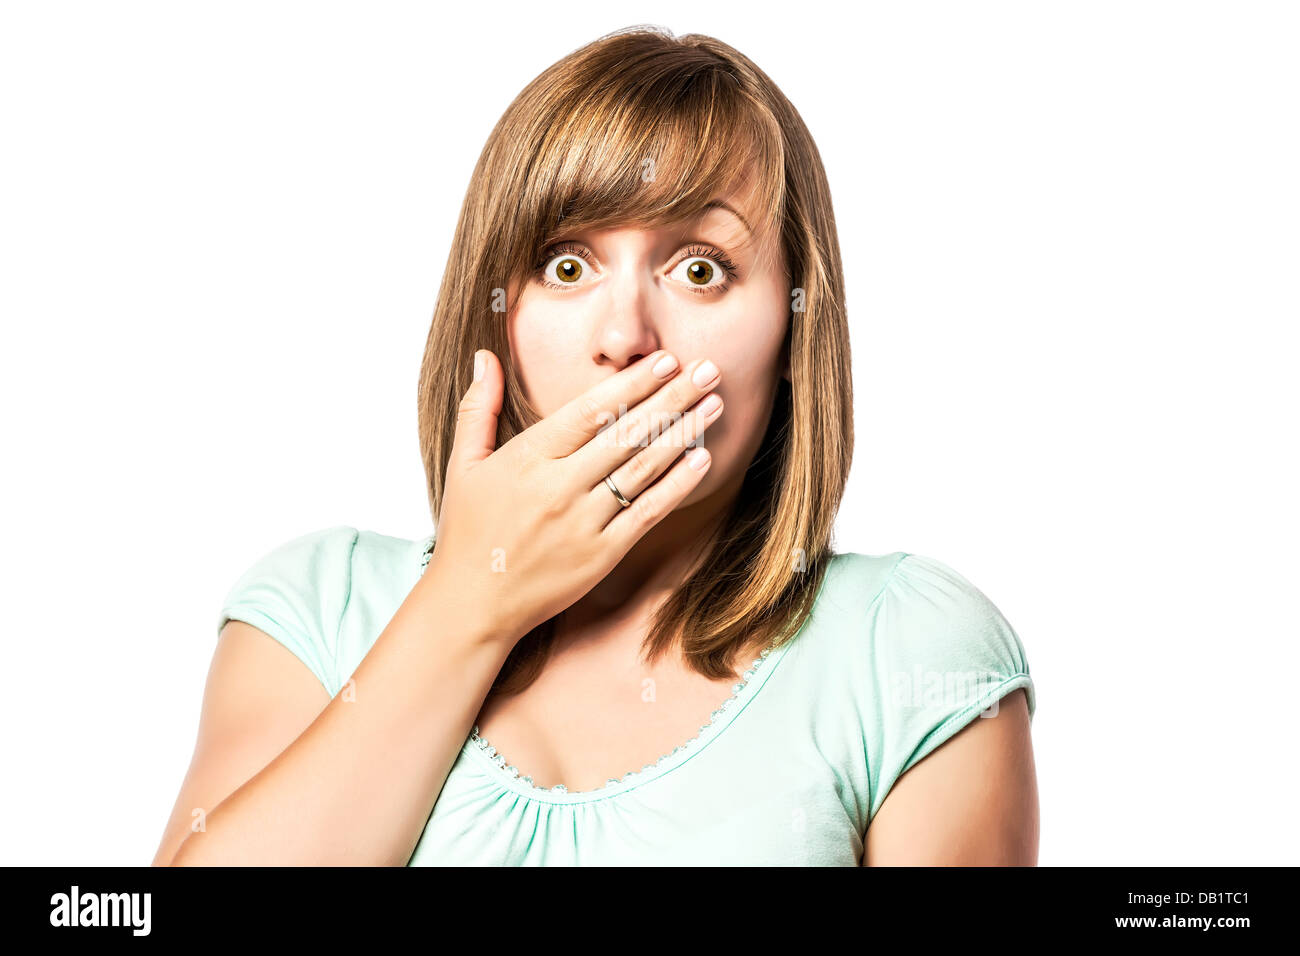 Shocked young girl who is afraid and keeps up with eyes wide open hand over her mouth, isolated on white background - Stock Image